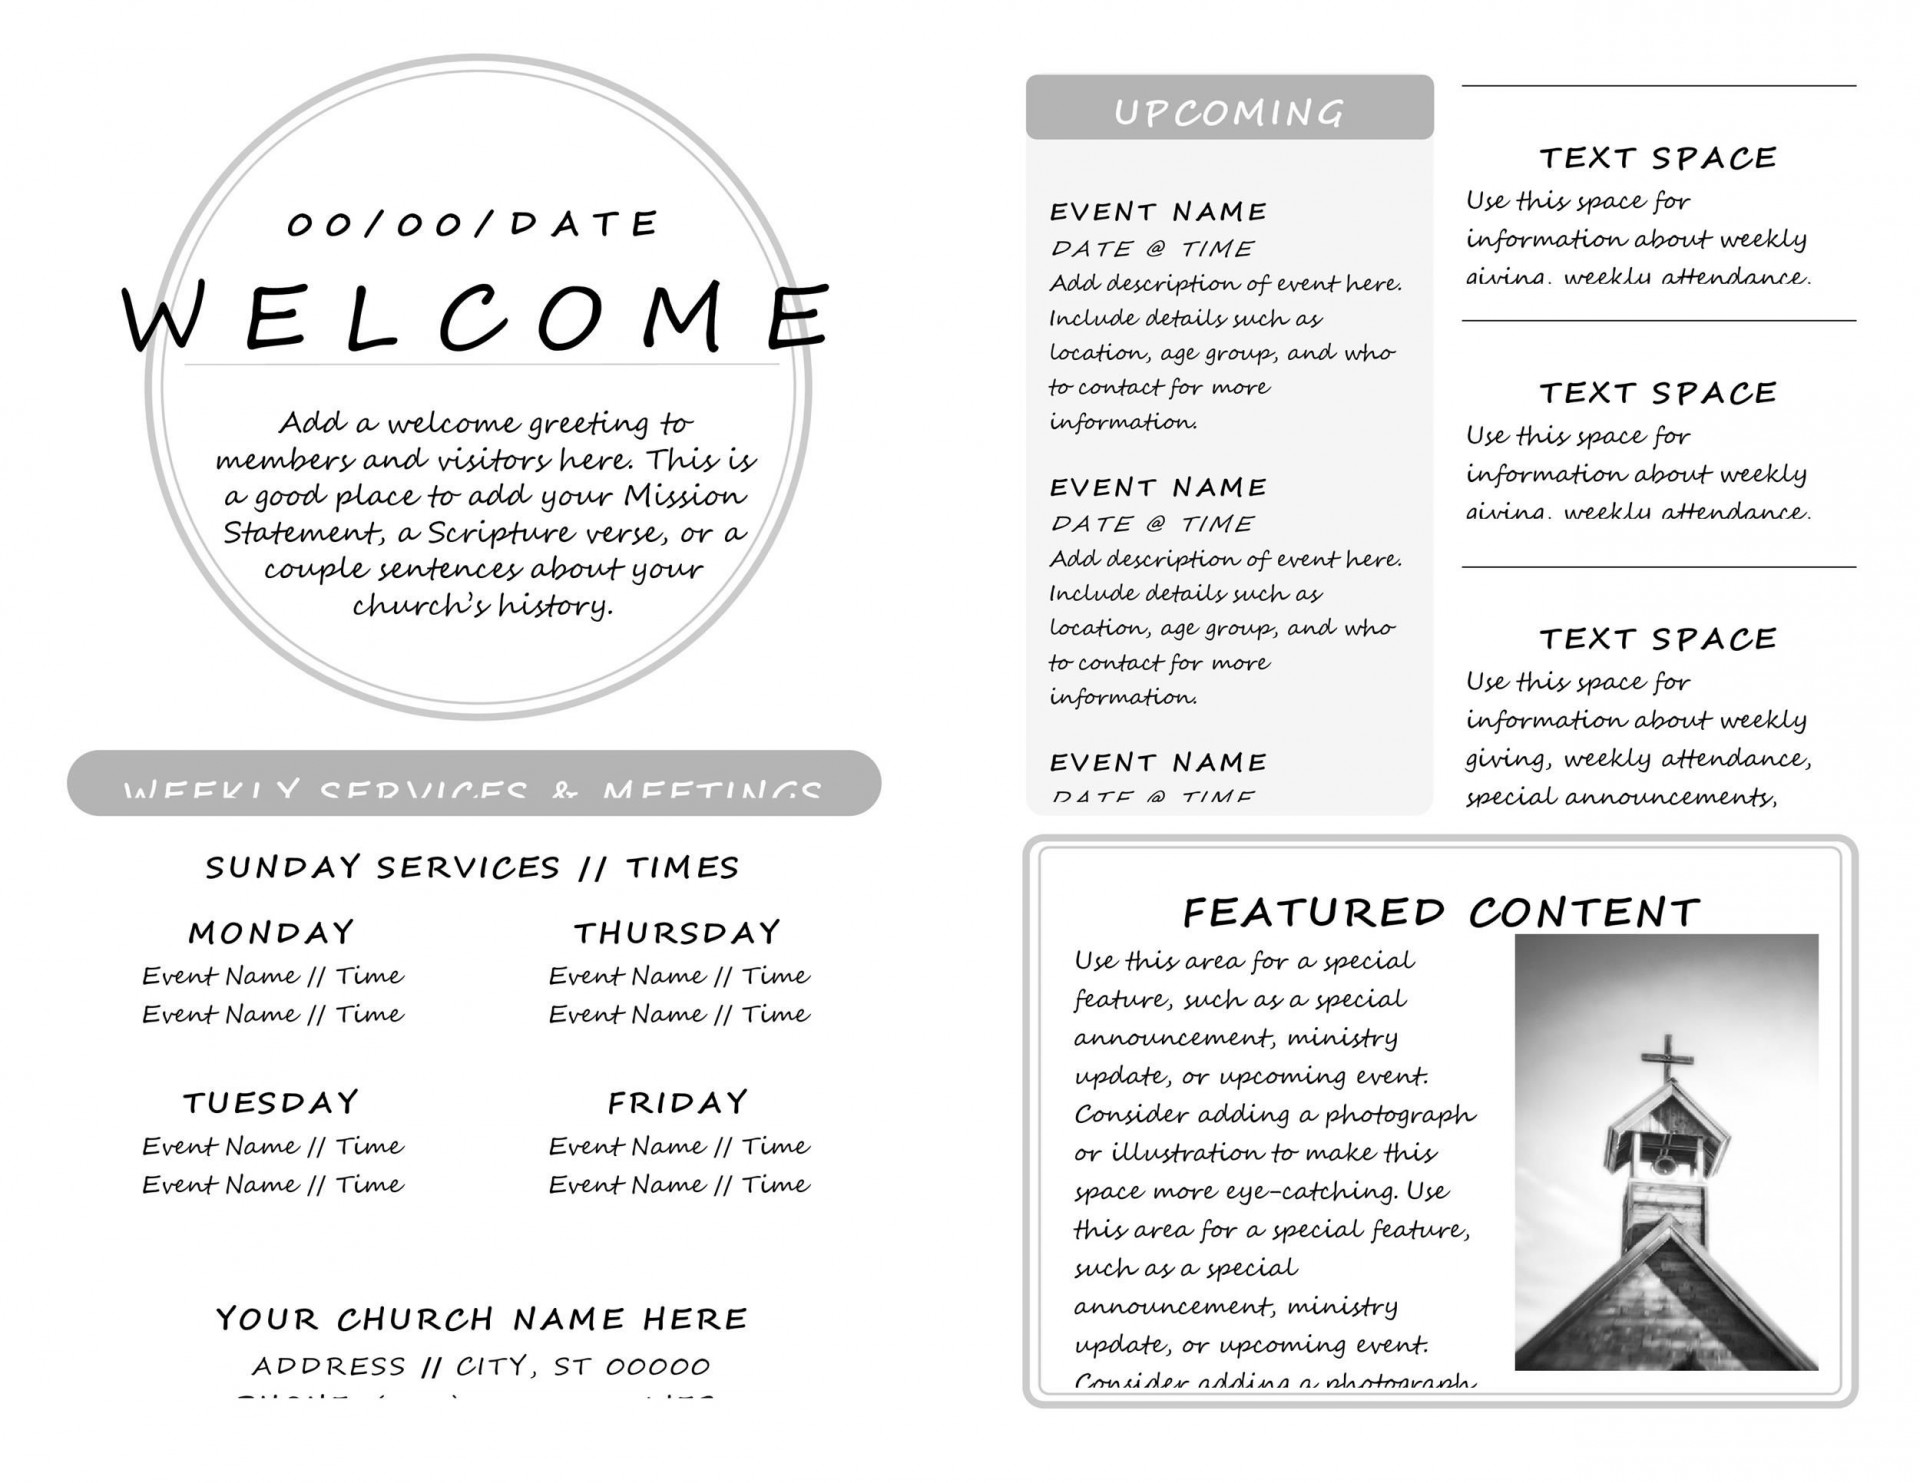 004 Marvelou Free Editable Church Program Template High Def 1920